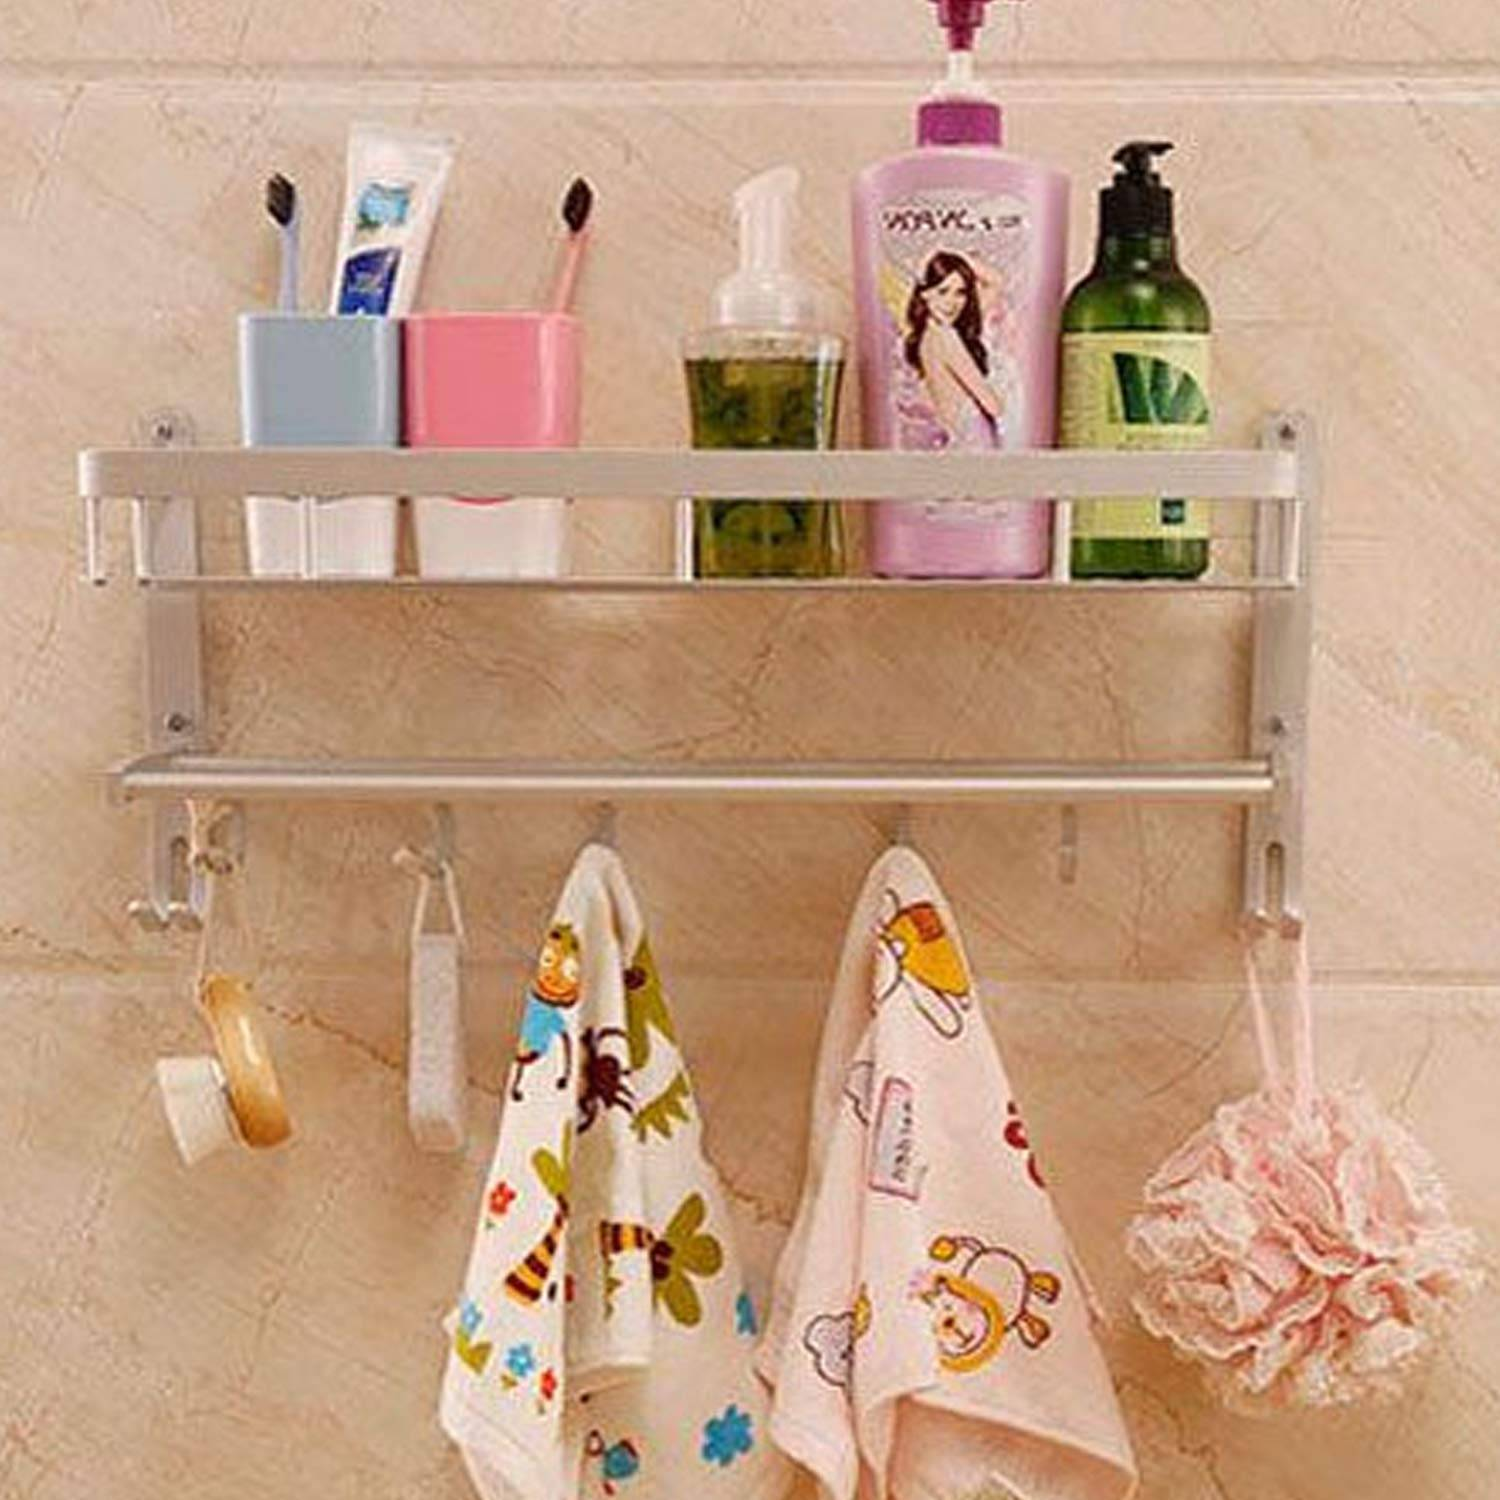 AND008257. Towel/Napkin Holder with Hooks